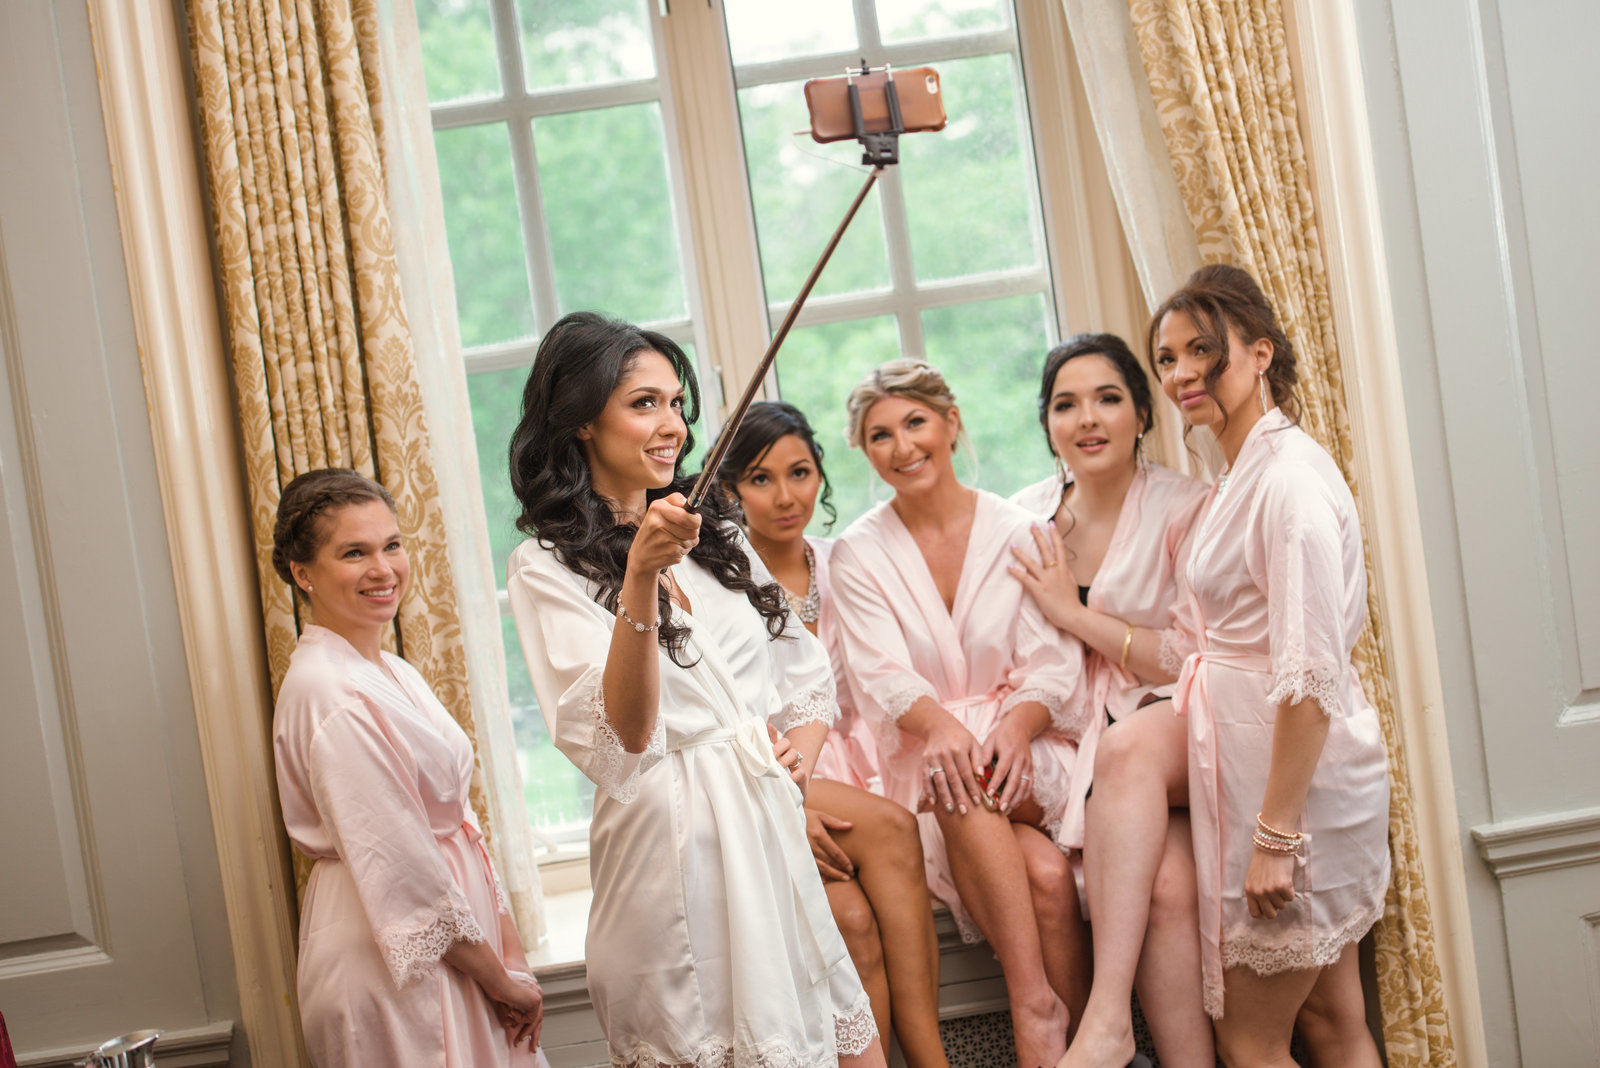 Bridesmaids selfie with the bride at Glen Cove Mansion